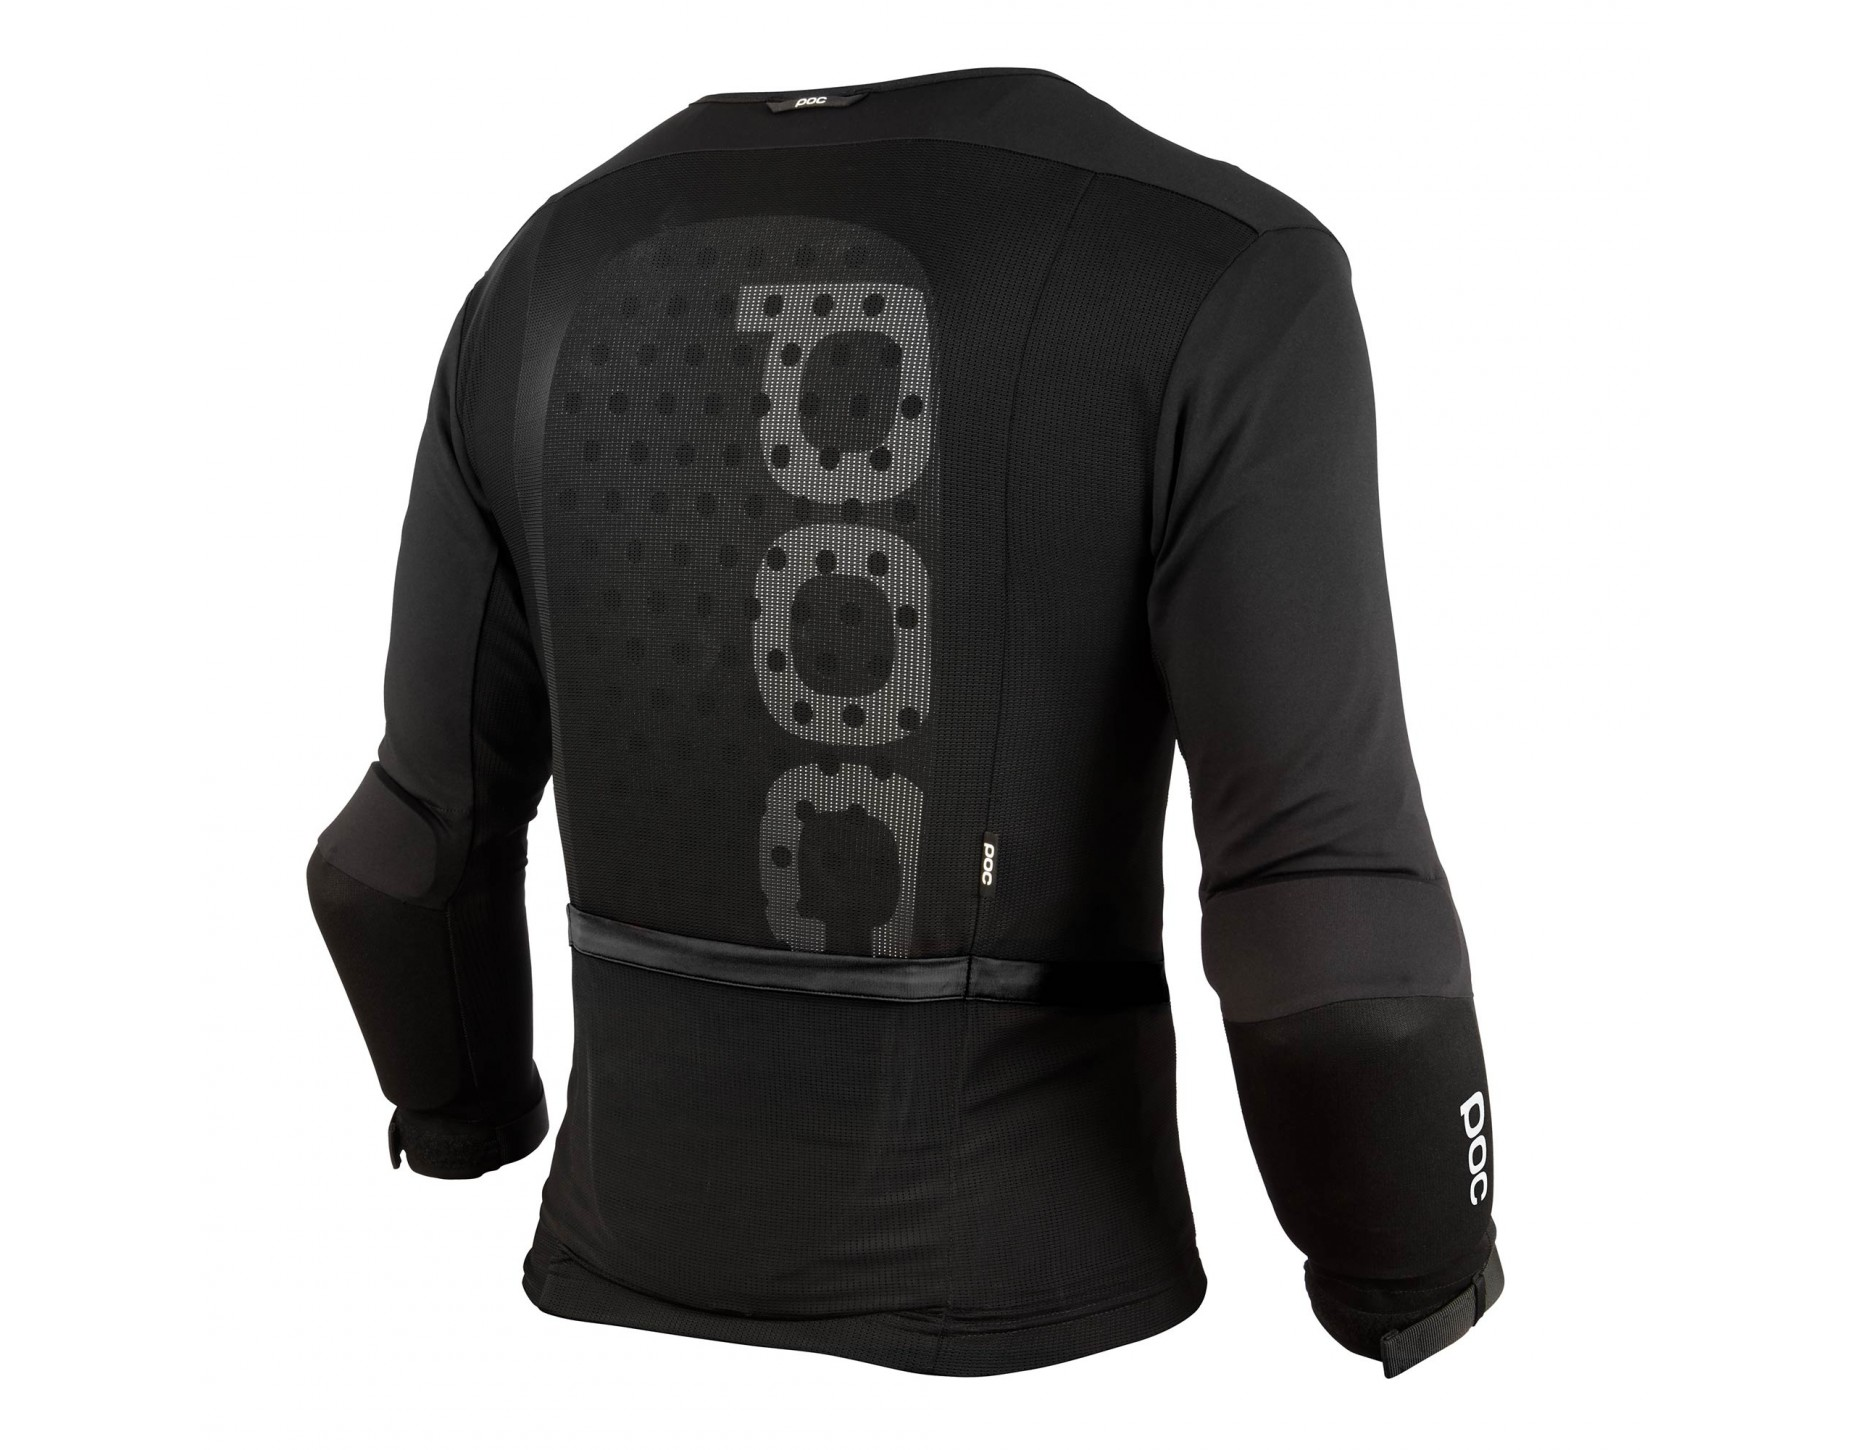 POC Spine VPD Air Tee protector shirt – everything you ...